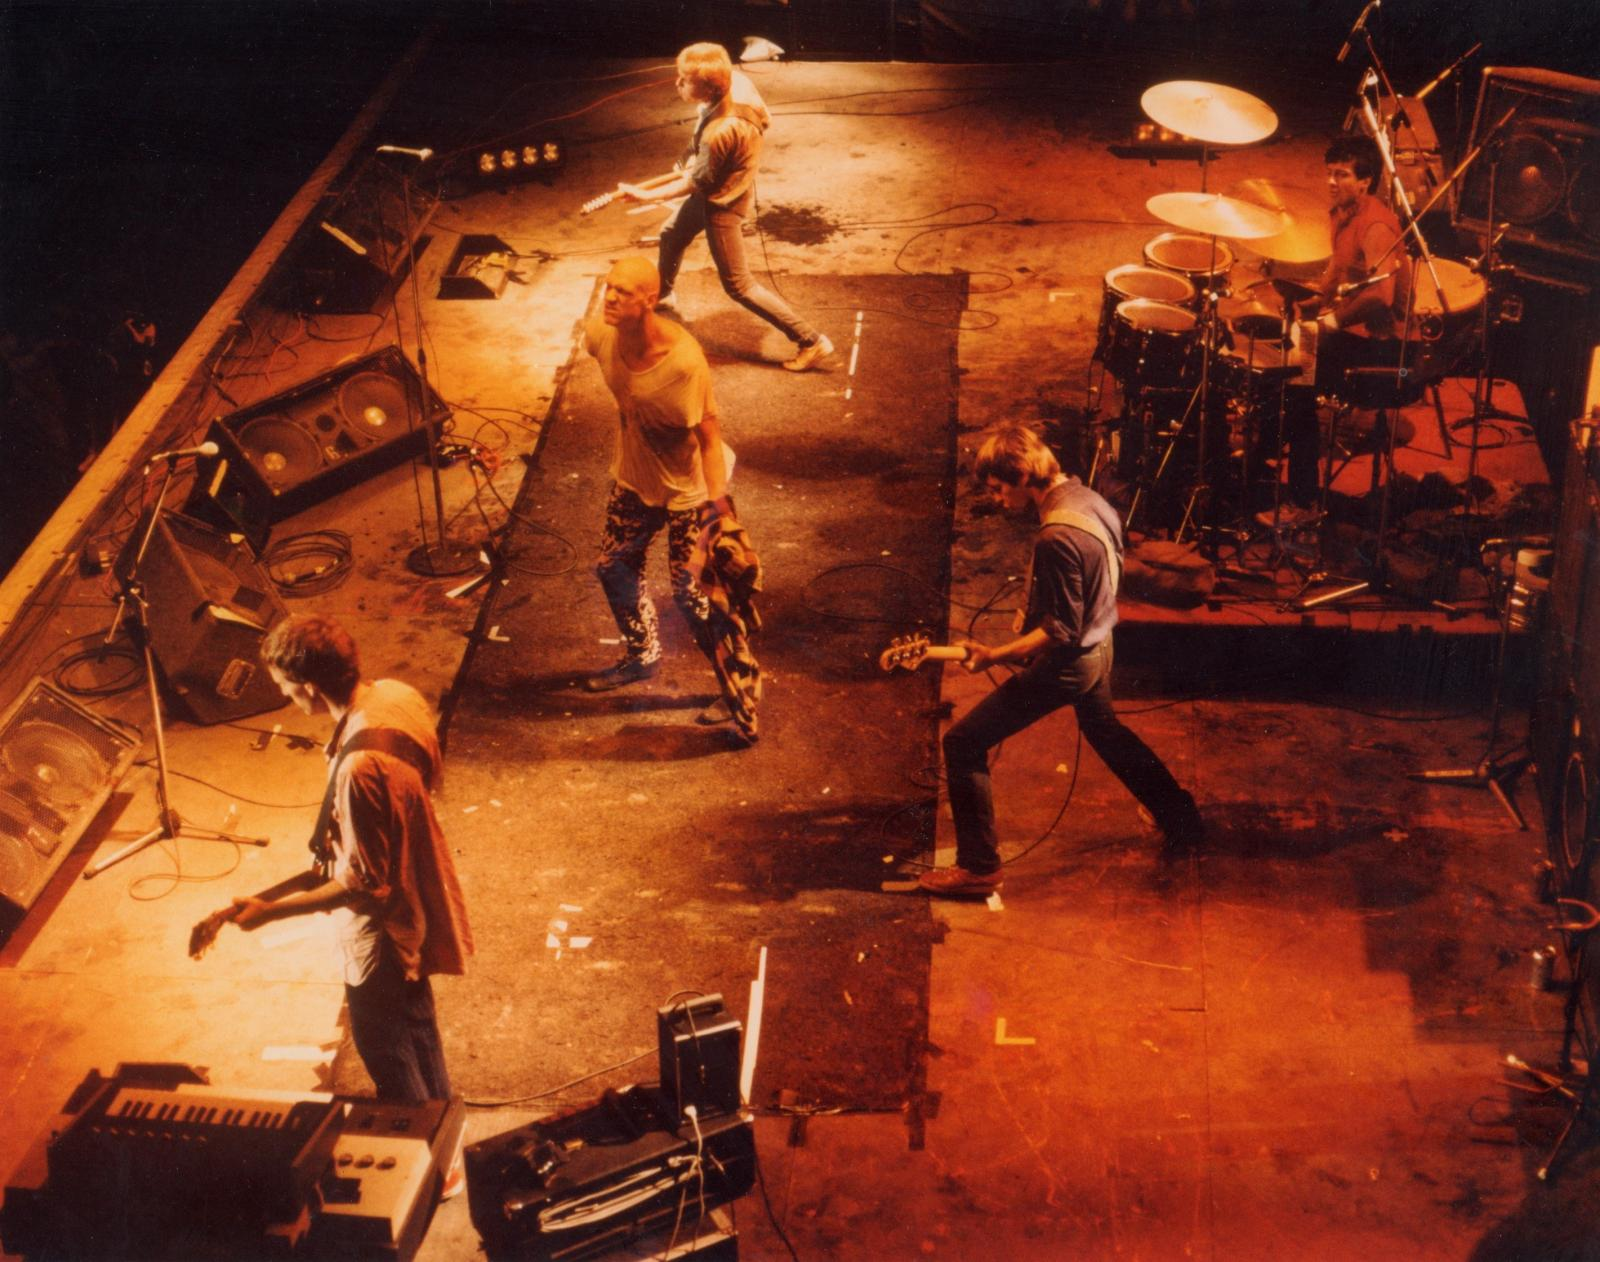 Midnight Oil - Live From The Mixing Desk London, England 1993